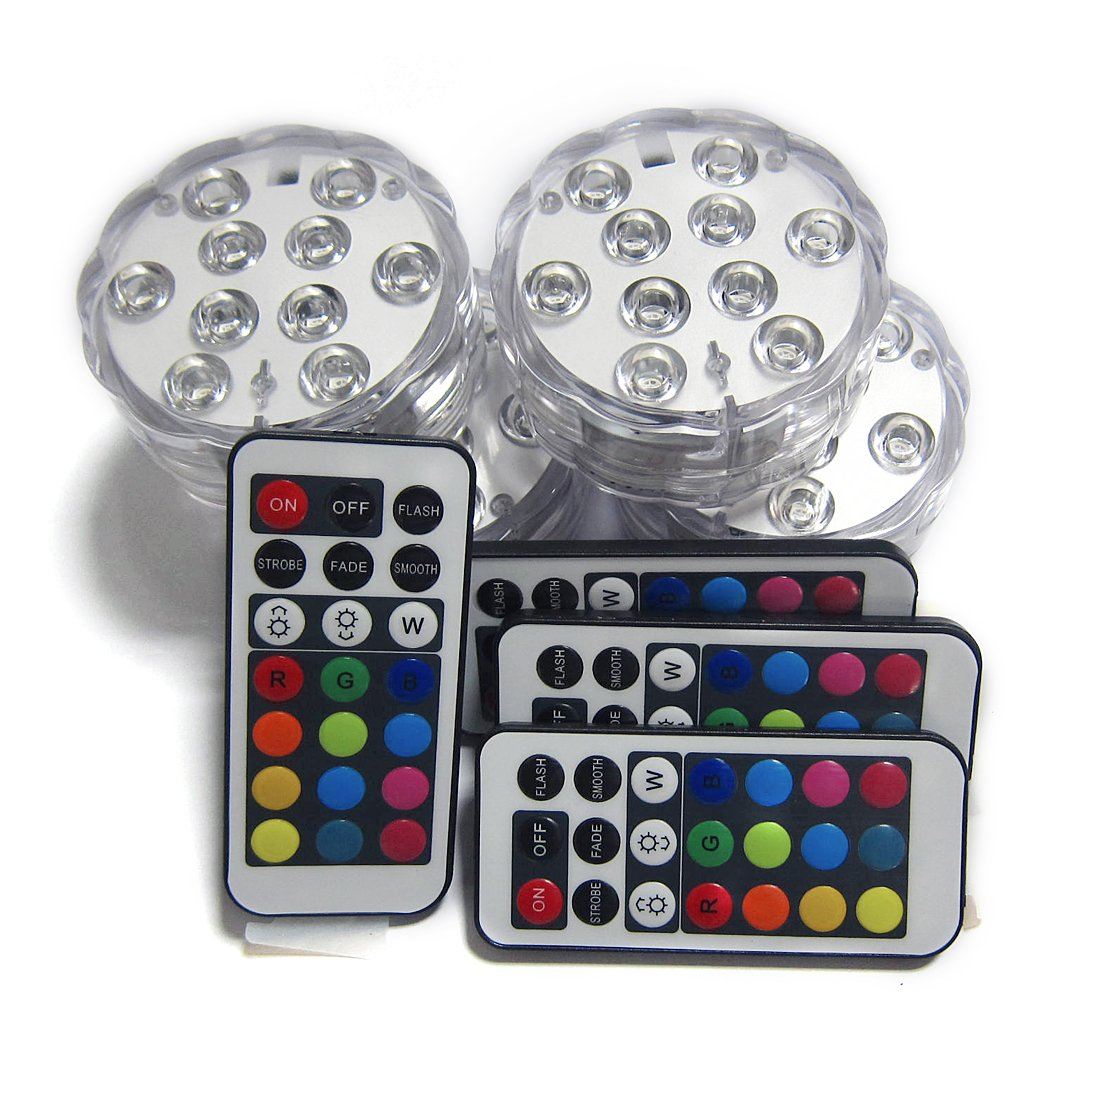 Creatrek RGB Color Changing LED Tea Lights, Battery Powered Submersible Vase Lamps W/ 21-Key Remote Control (4-Pack)